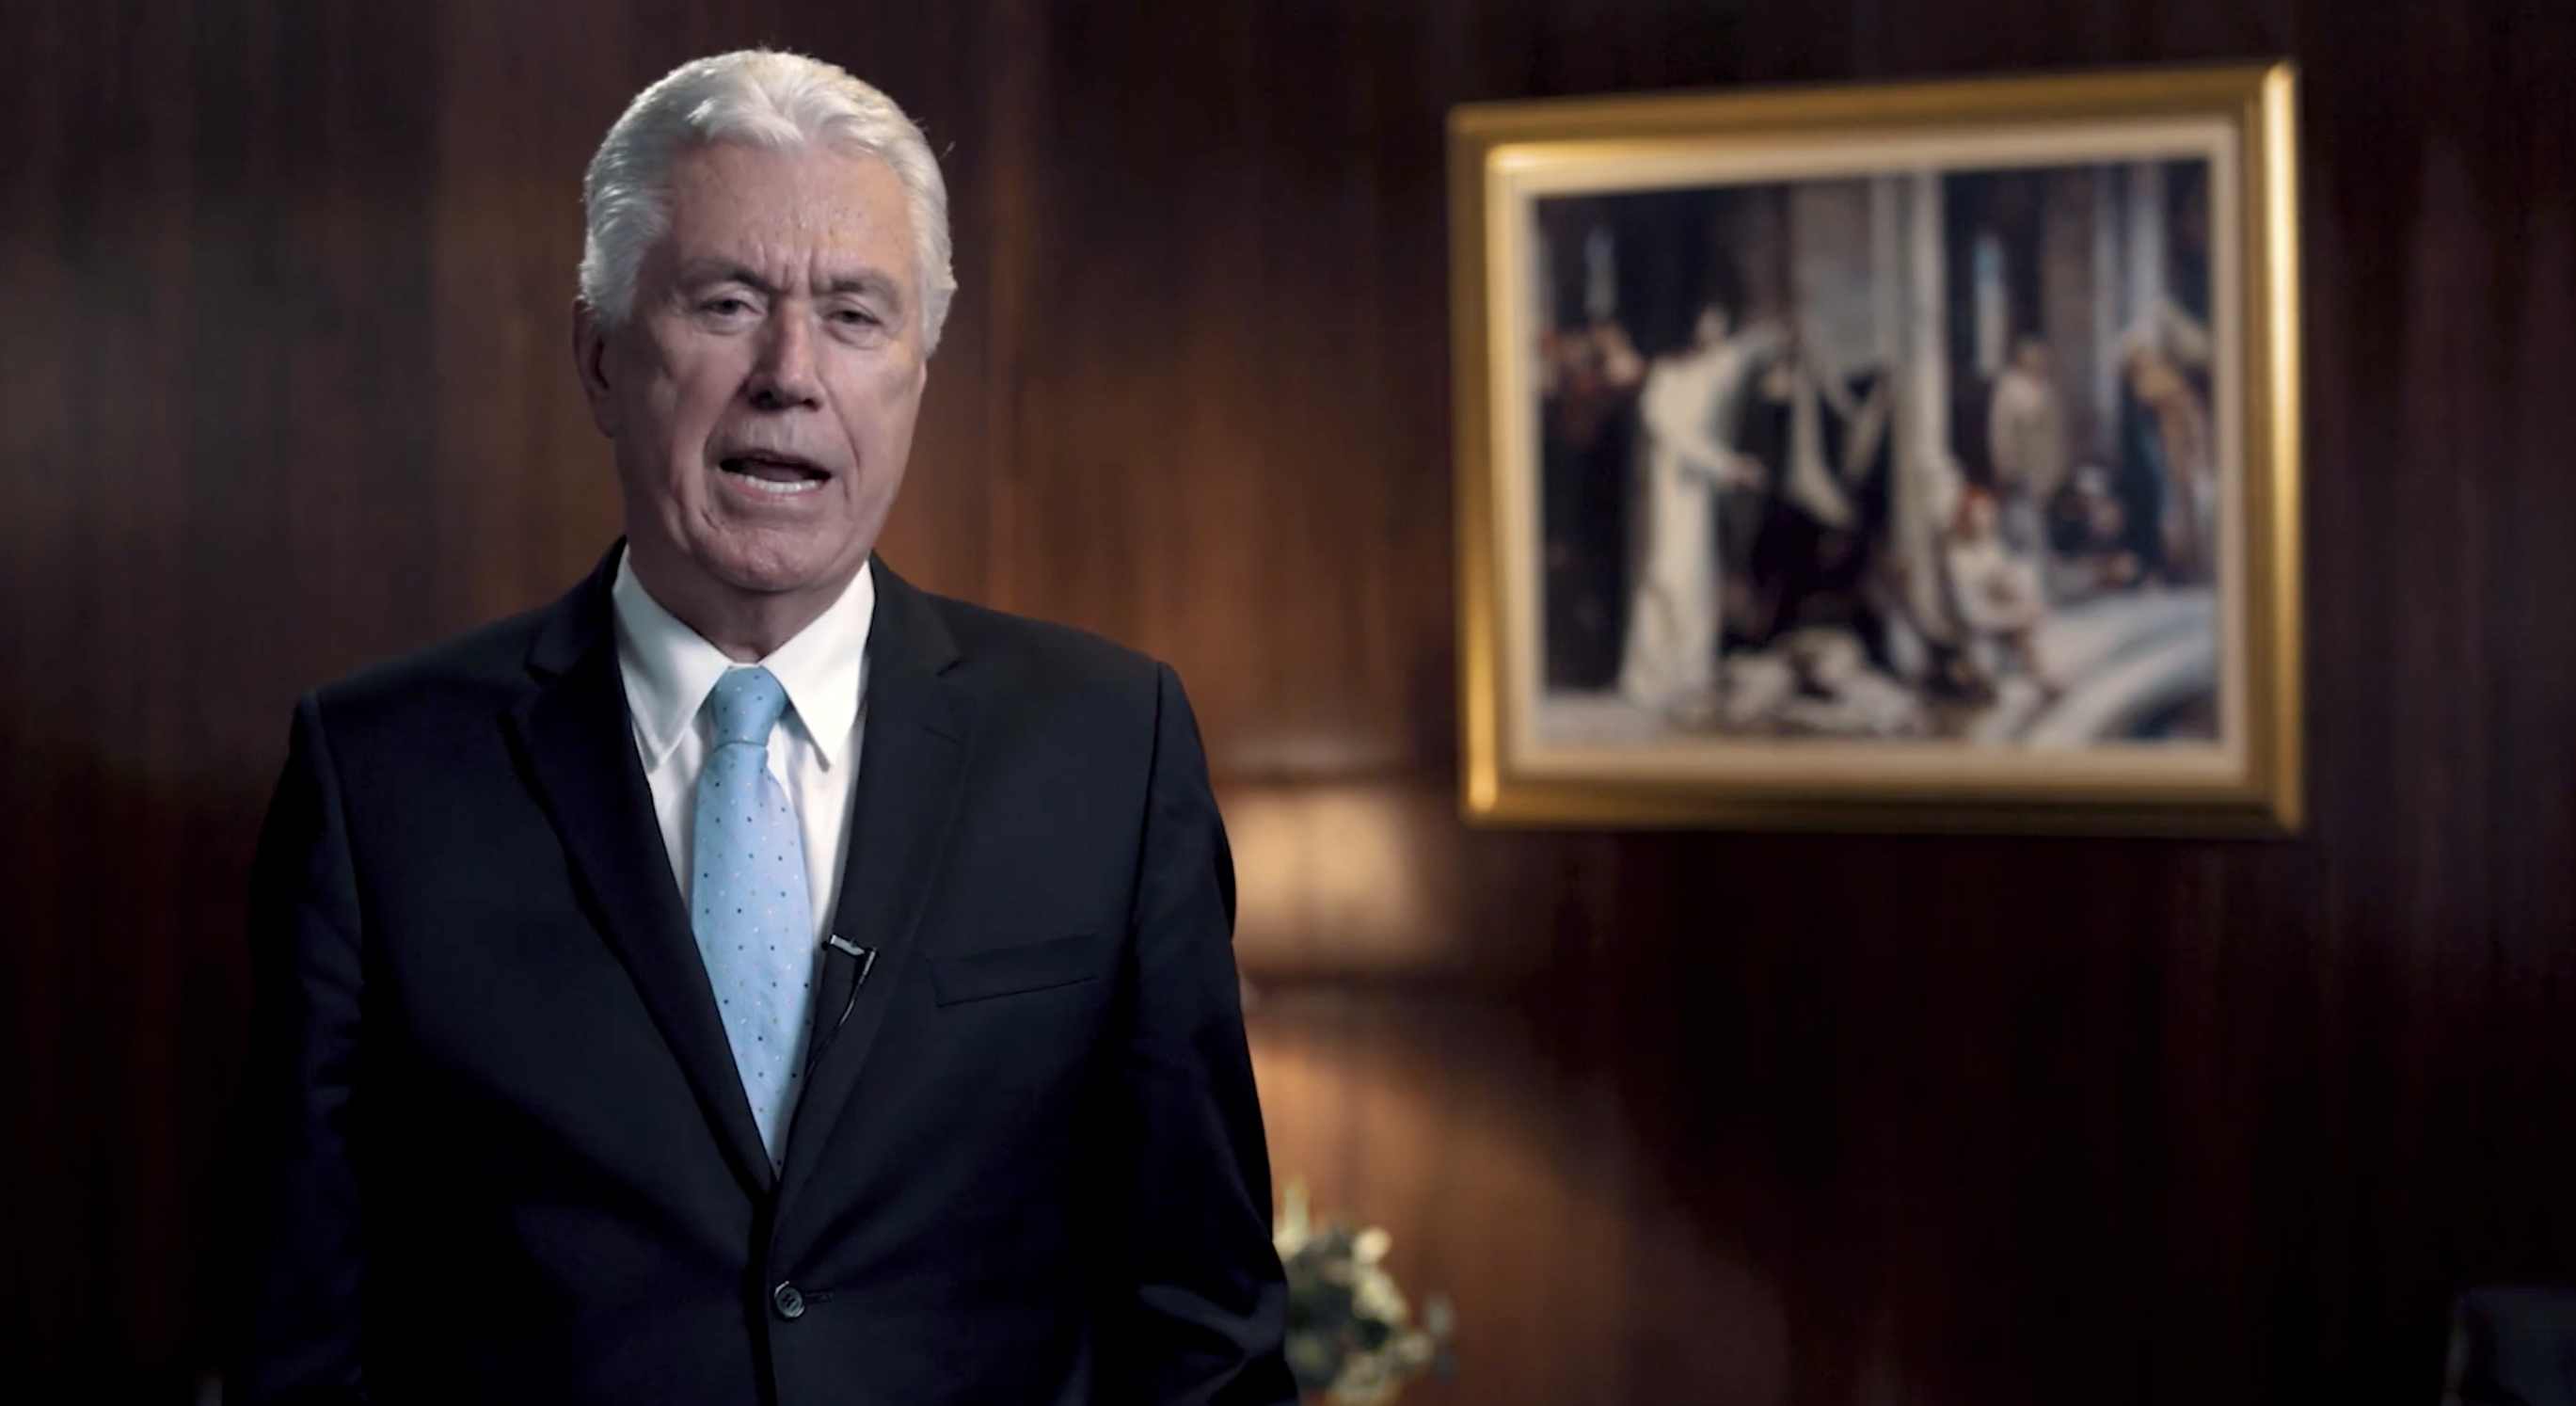 """Screen capture of Elder Dieter F. Uchtdorf of the Quorum of the Twelve Apostles from the BYU-Pathway Worldwide video launching the """"come and see"""" initiative."""